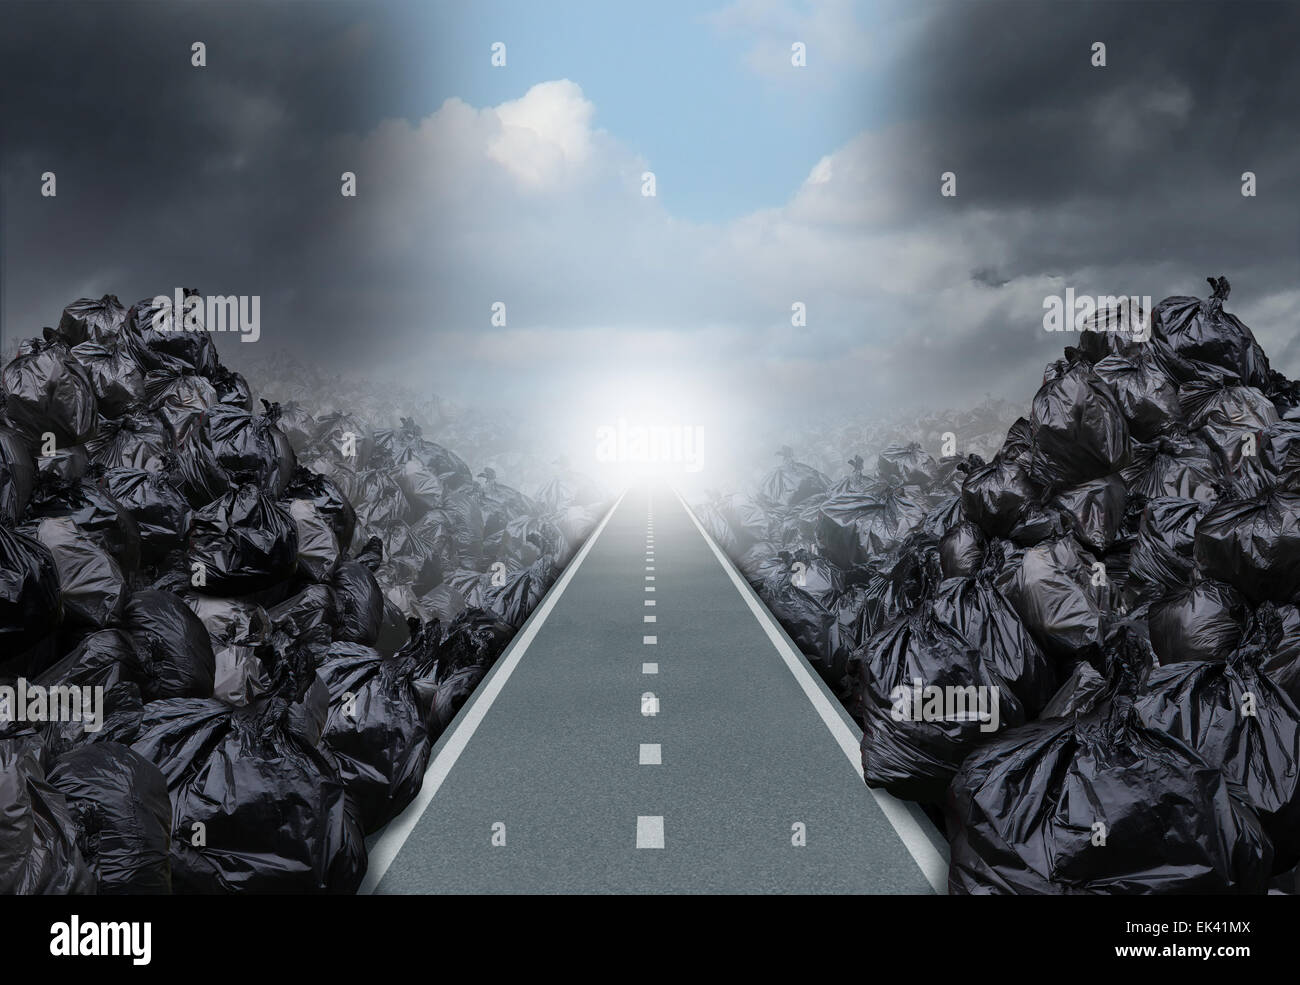 Garbage solution environmental concept as a straight road or clear path cutting through a background with garbage - Stock Image